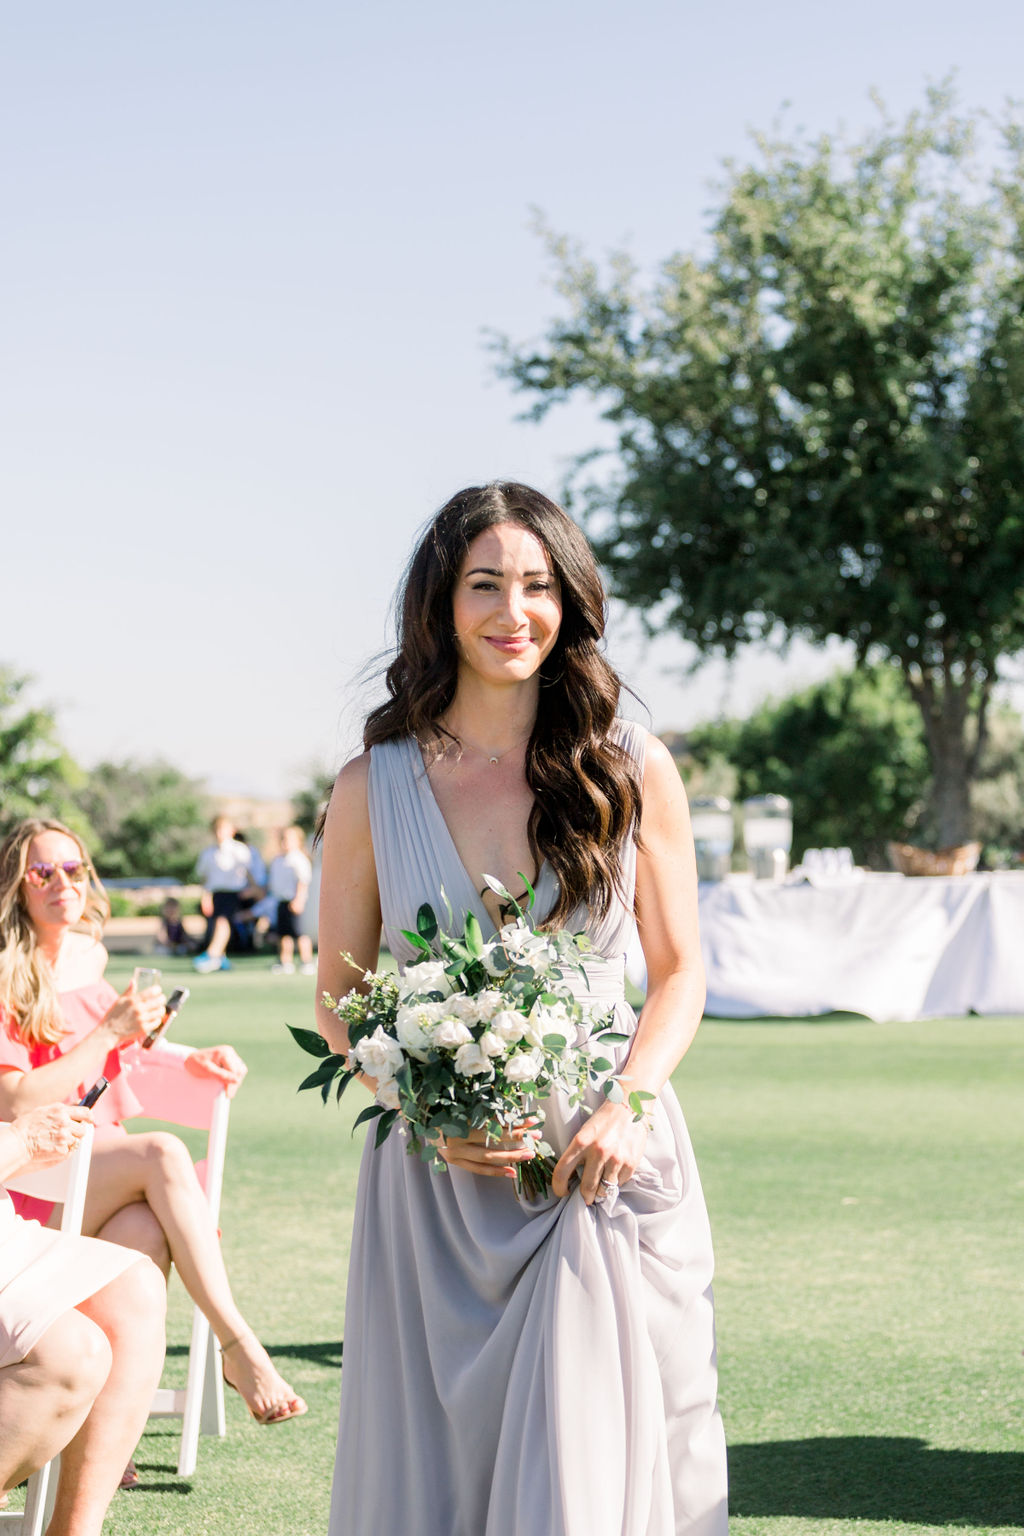 Superstition Mountain Destination Wedding - Arizona Wedding Florist - Phoenix, Scottsdale, Sedona - Bridesmaid Walking Down the Aisle